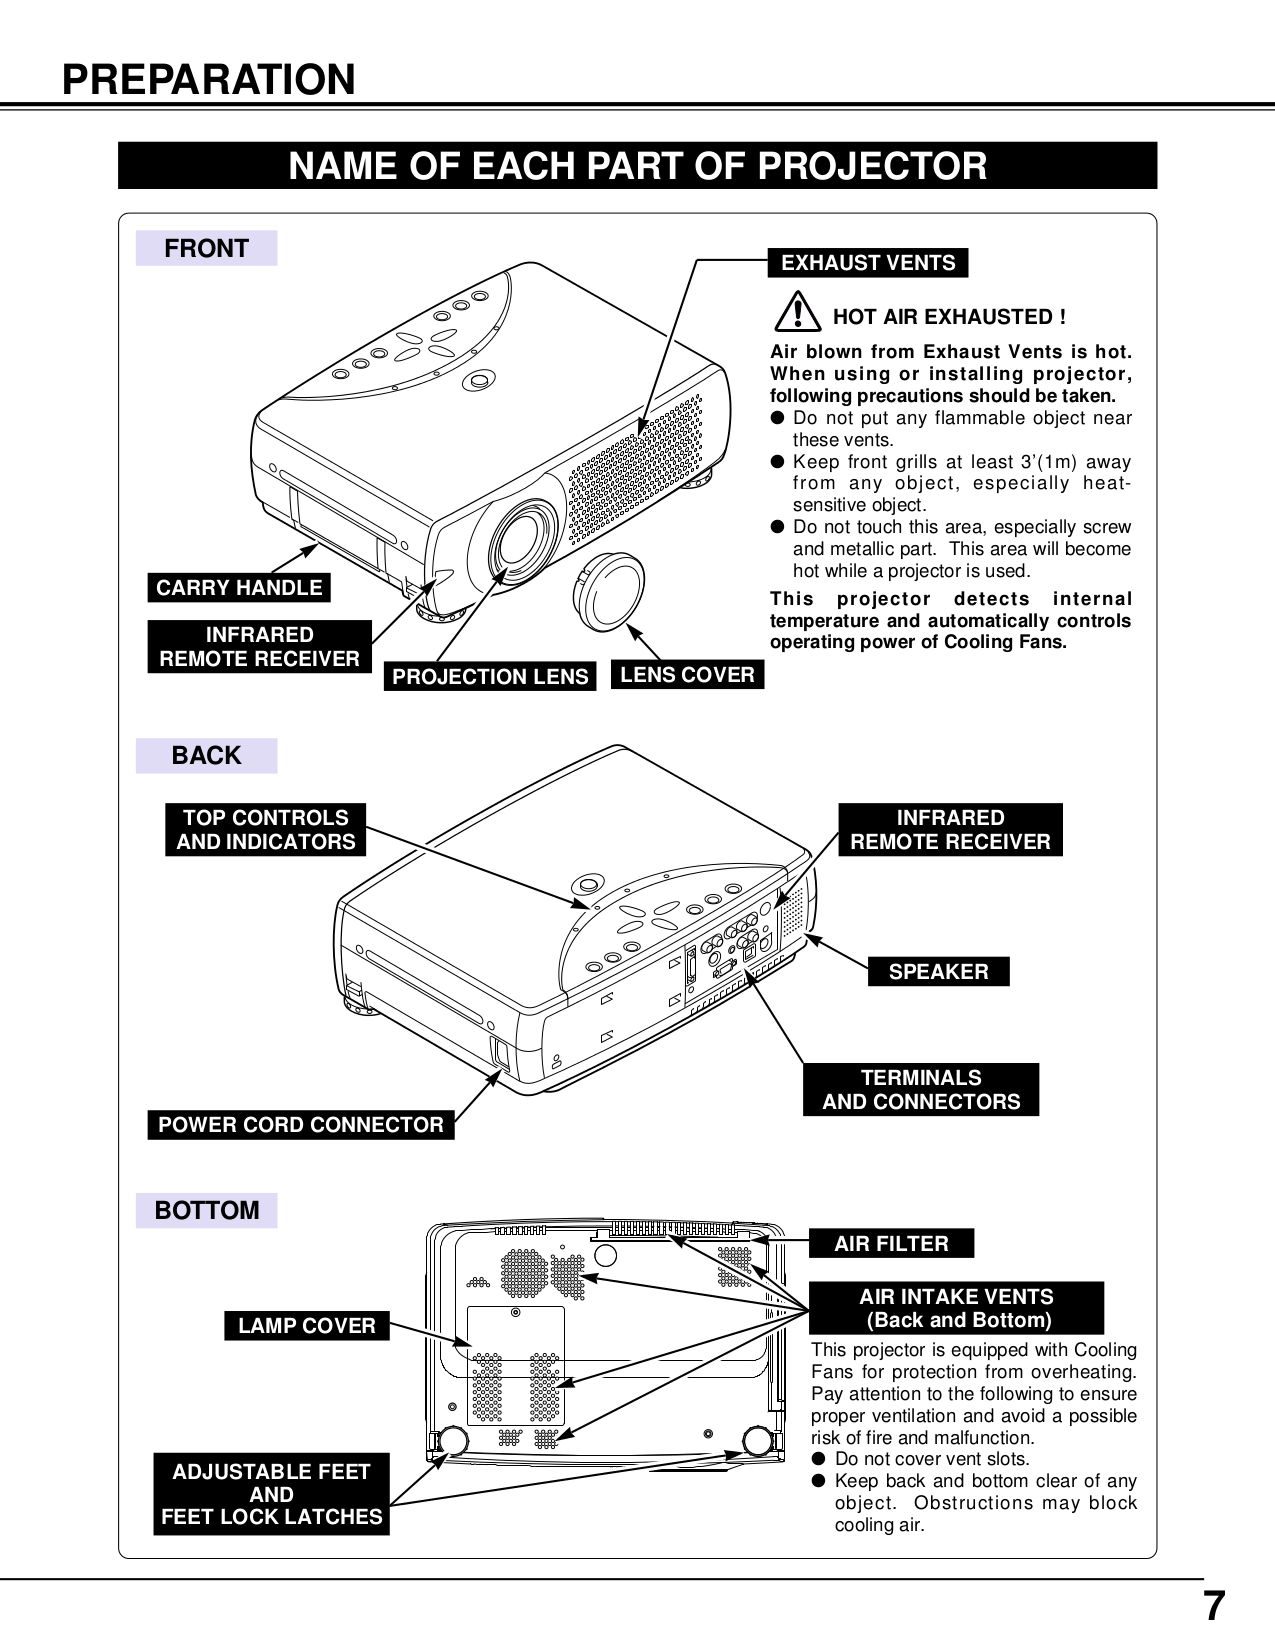 ... Array - sanyo ce42fd90 b manual ebook rh sanyo ce42fd90 b manual ebook  bouletboots us